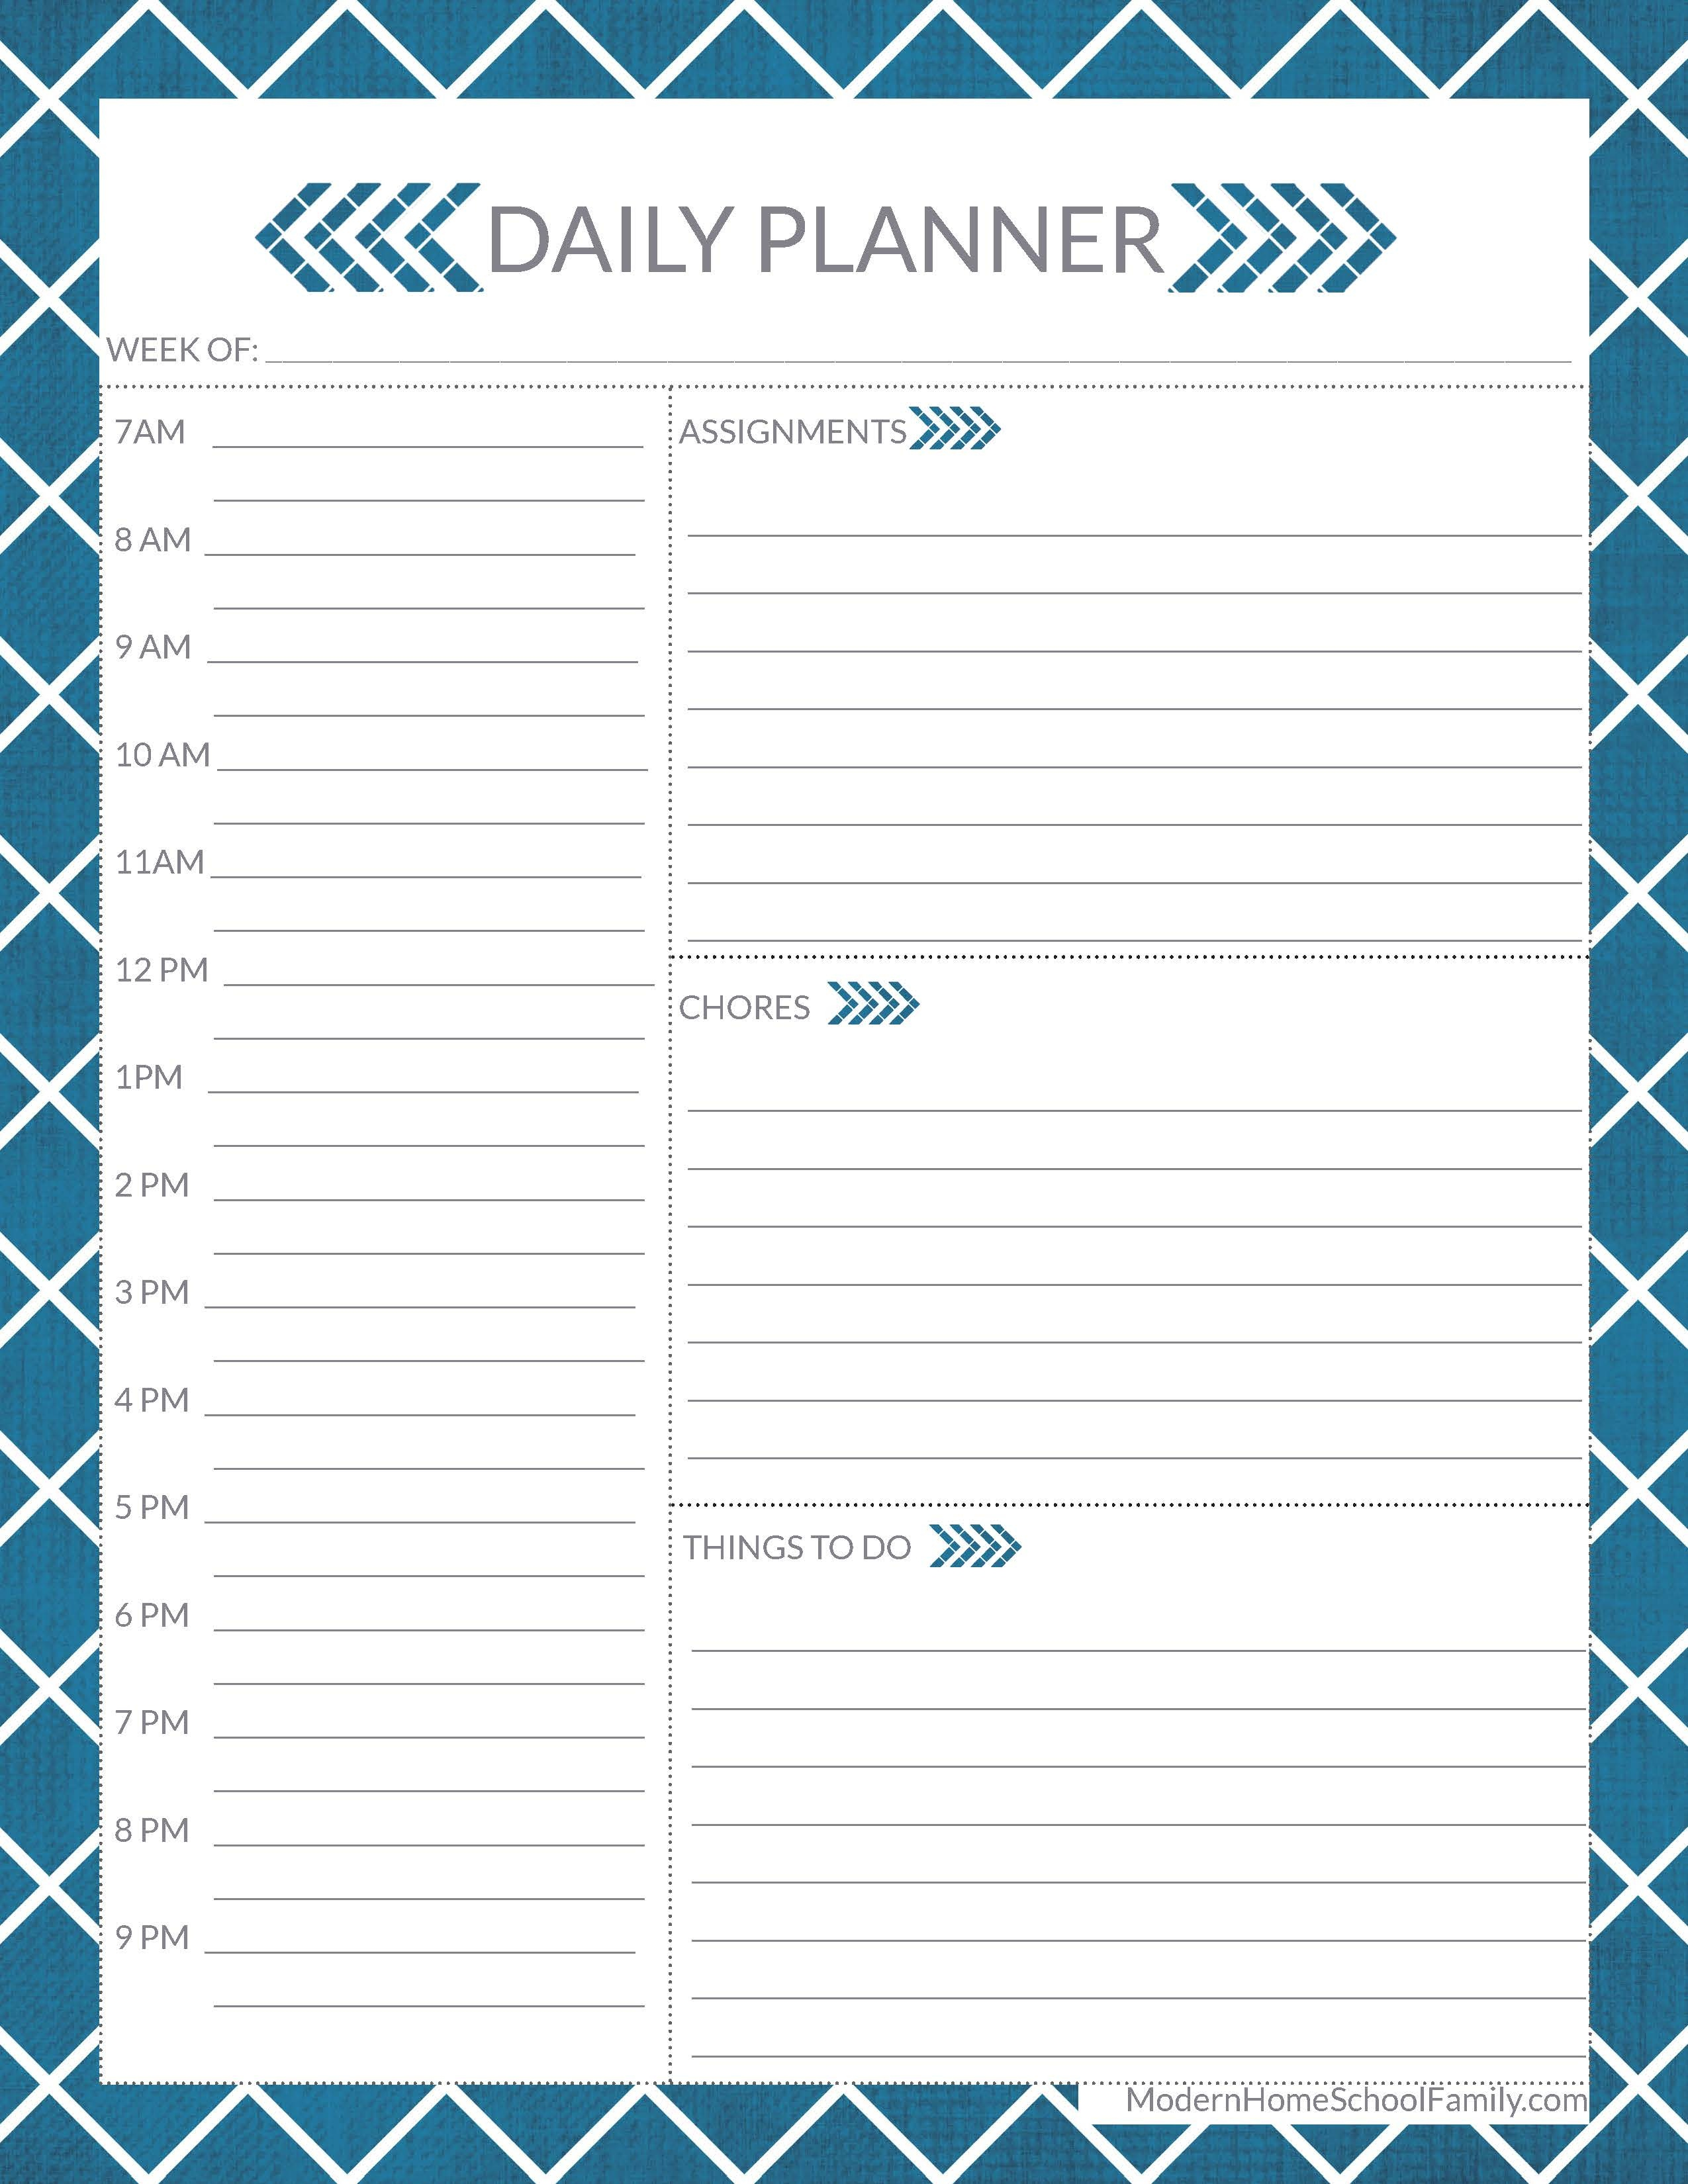 Free Homeschool Planner For High School Page - Modern Homeschool Family - Free Homeschool Printable Worksheets